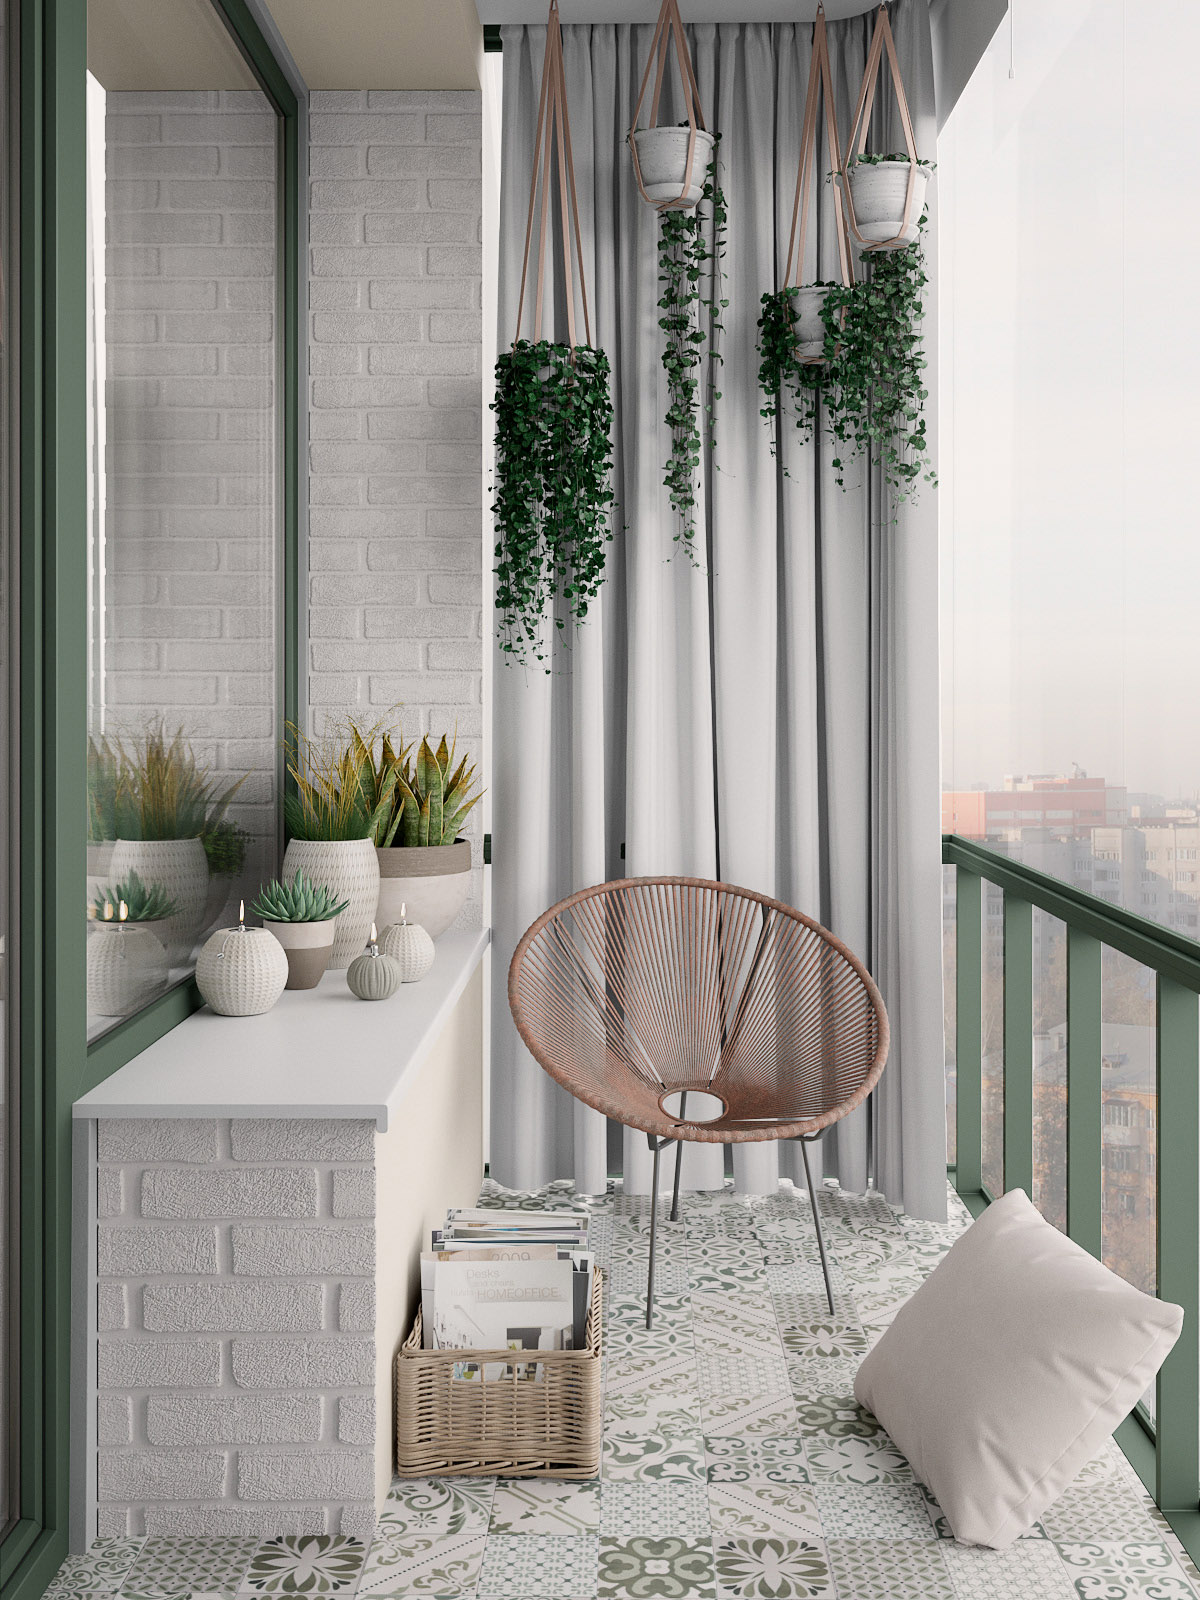 Scandinavian Style Interior Infused With Garden Greenery images 10